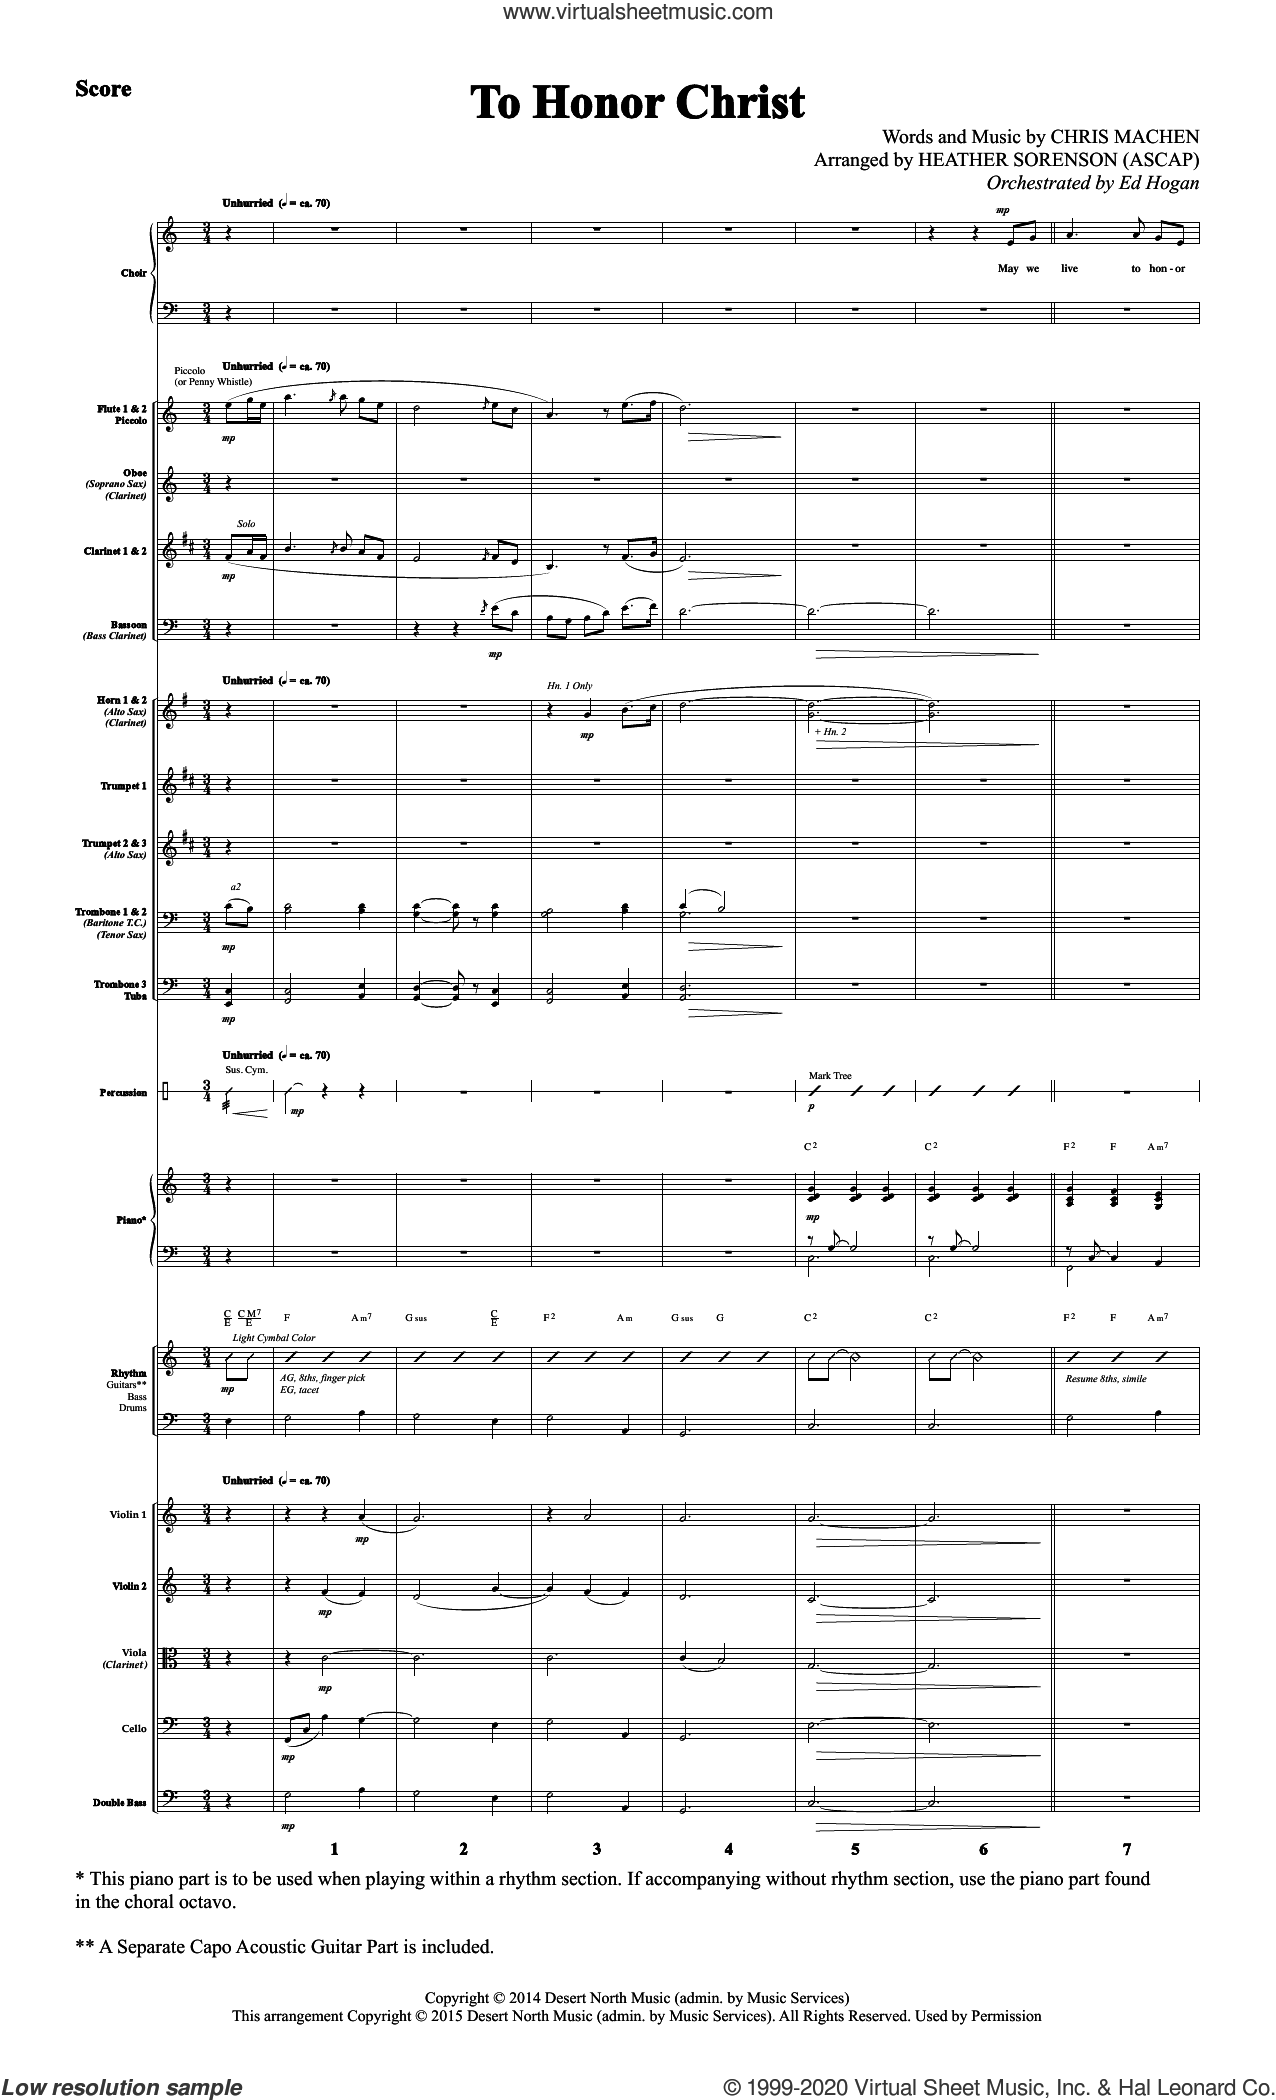 To Honor Christ (COMPLETE) sheet music for orchestra/band by Heather Sorenson and Chris Machen, intermediate skill level